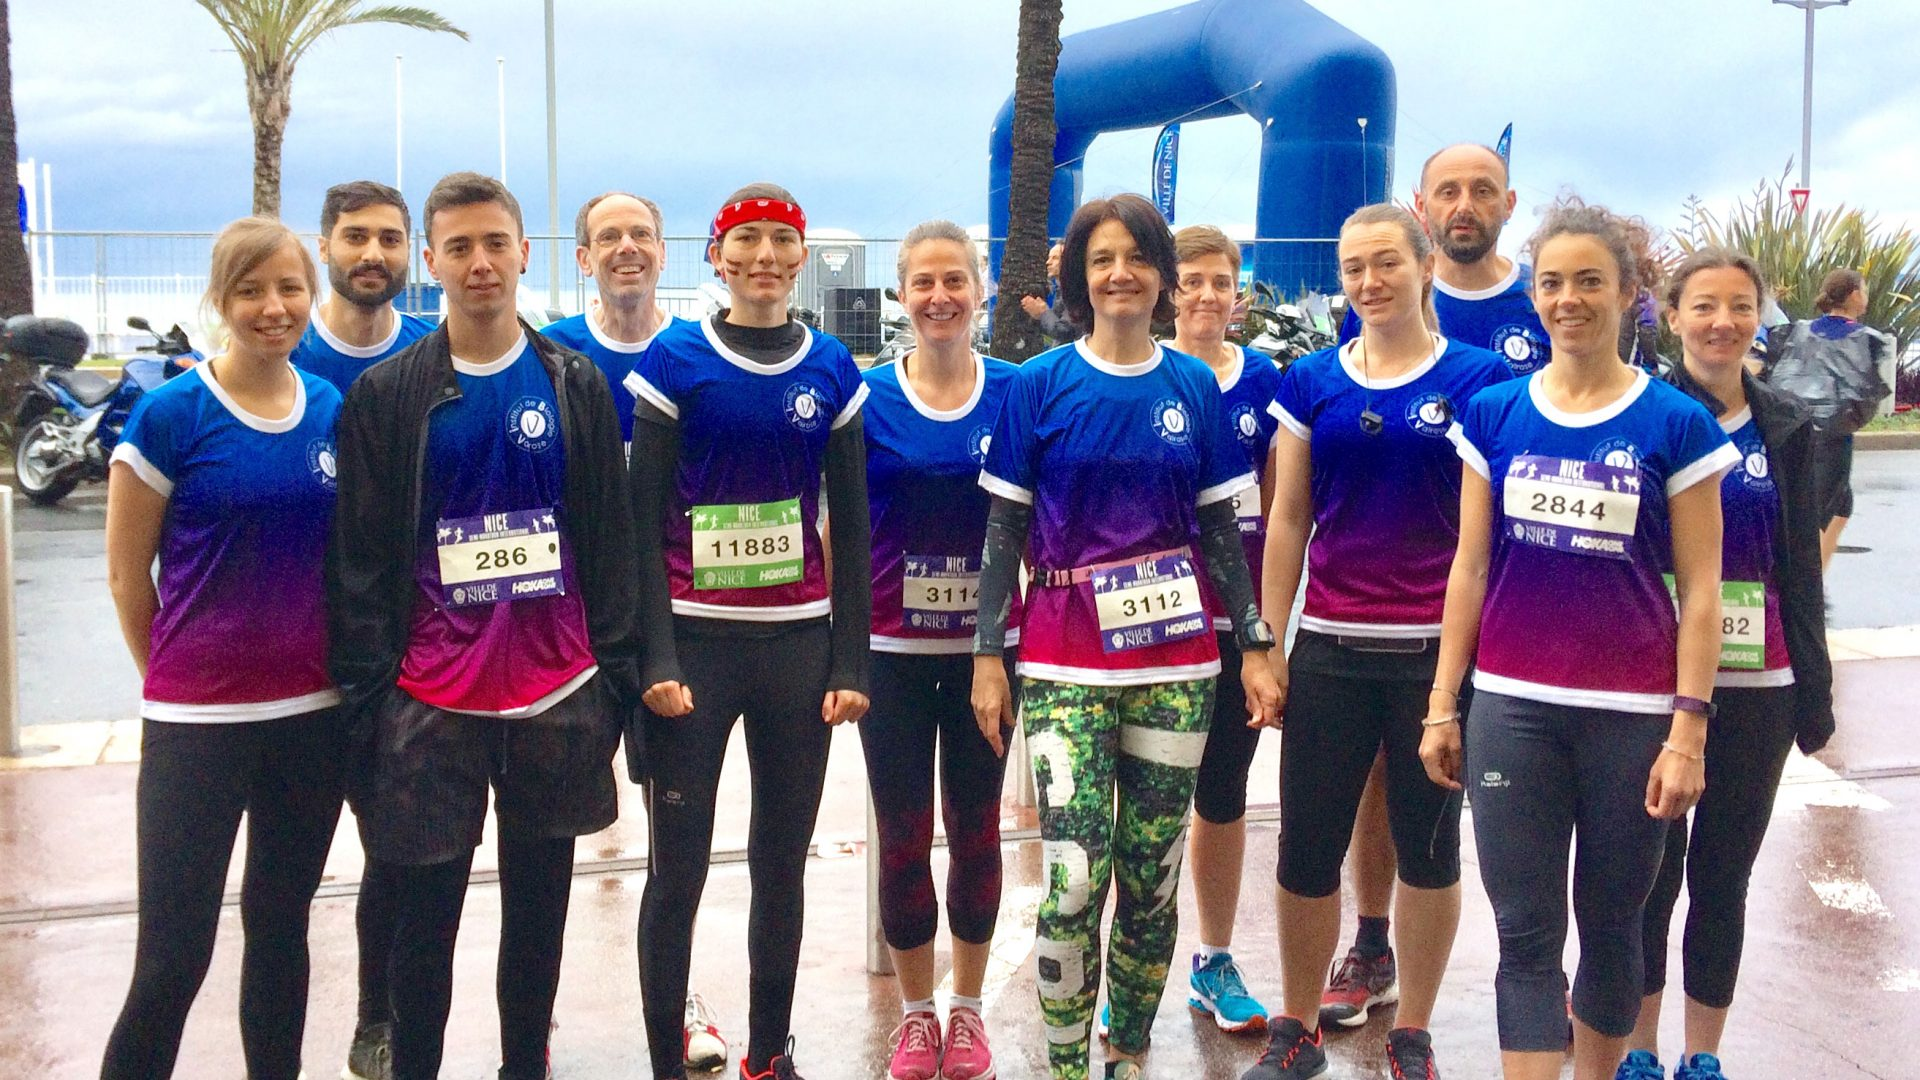 """All ends well that starts bad"": The iBV team at the 2019 Nice running days"